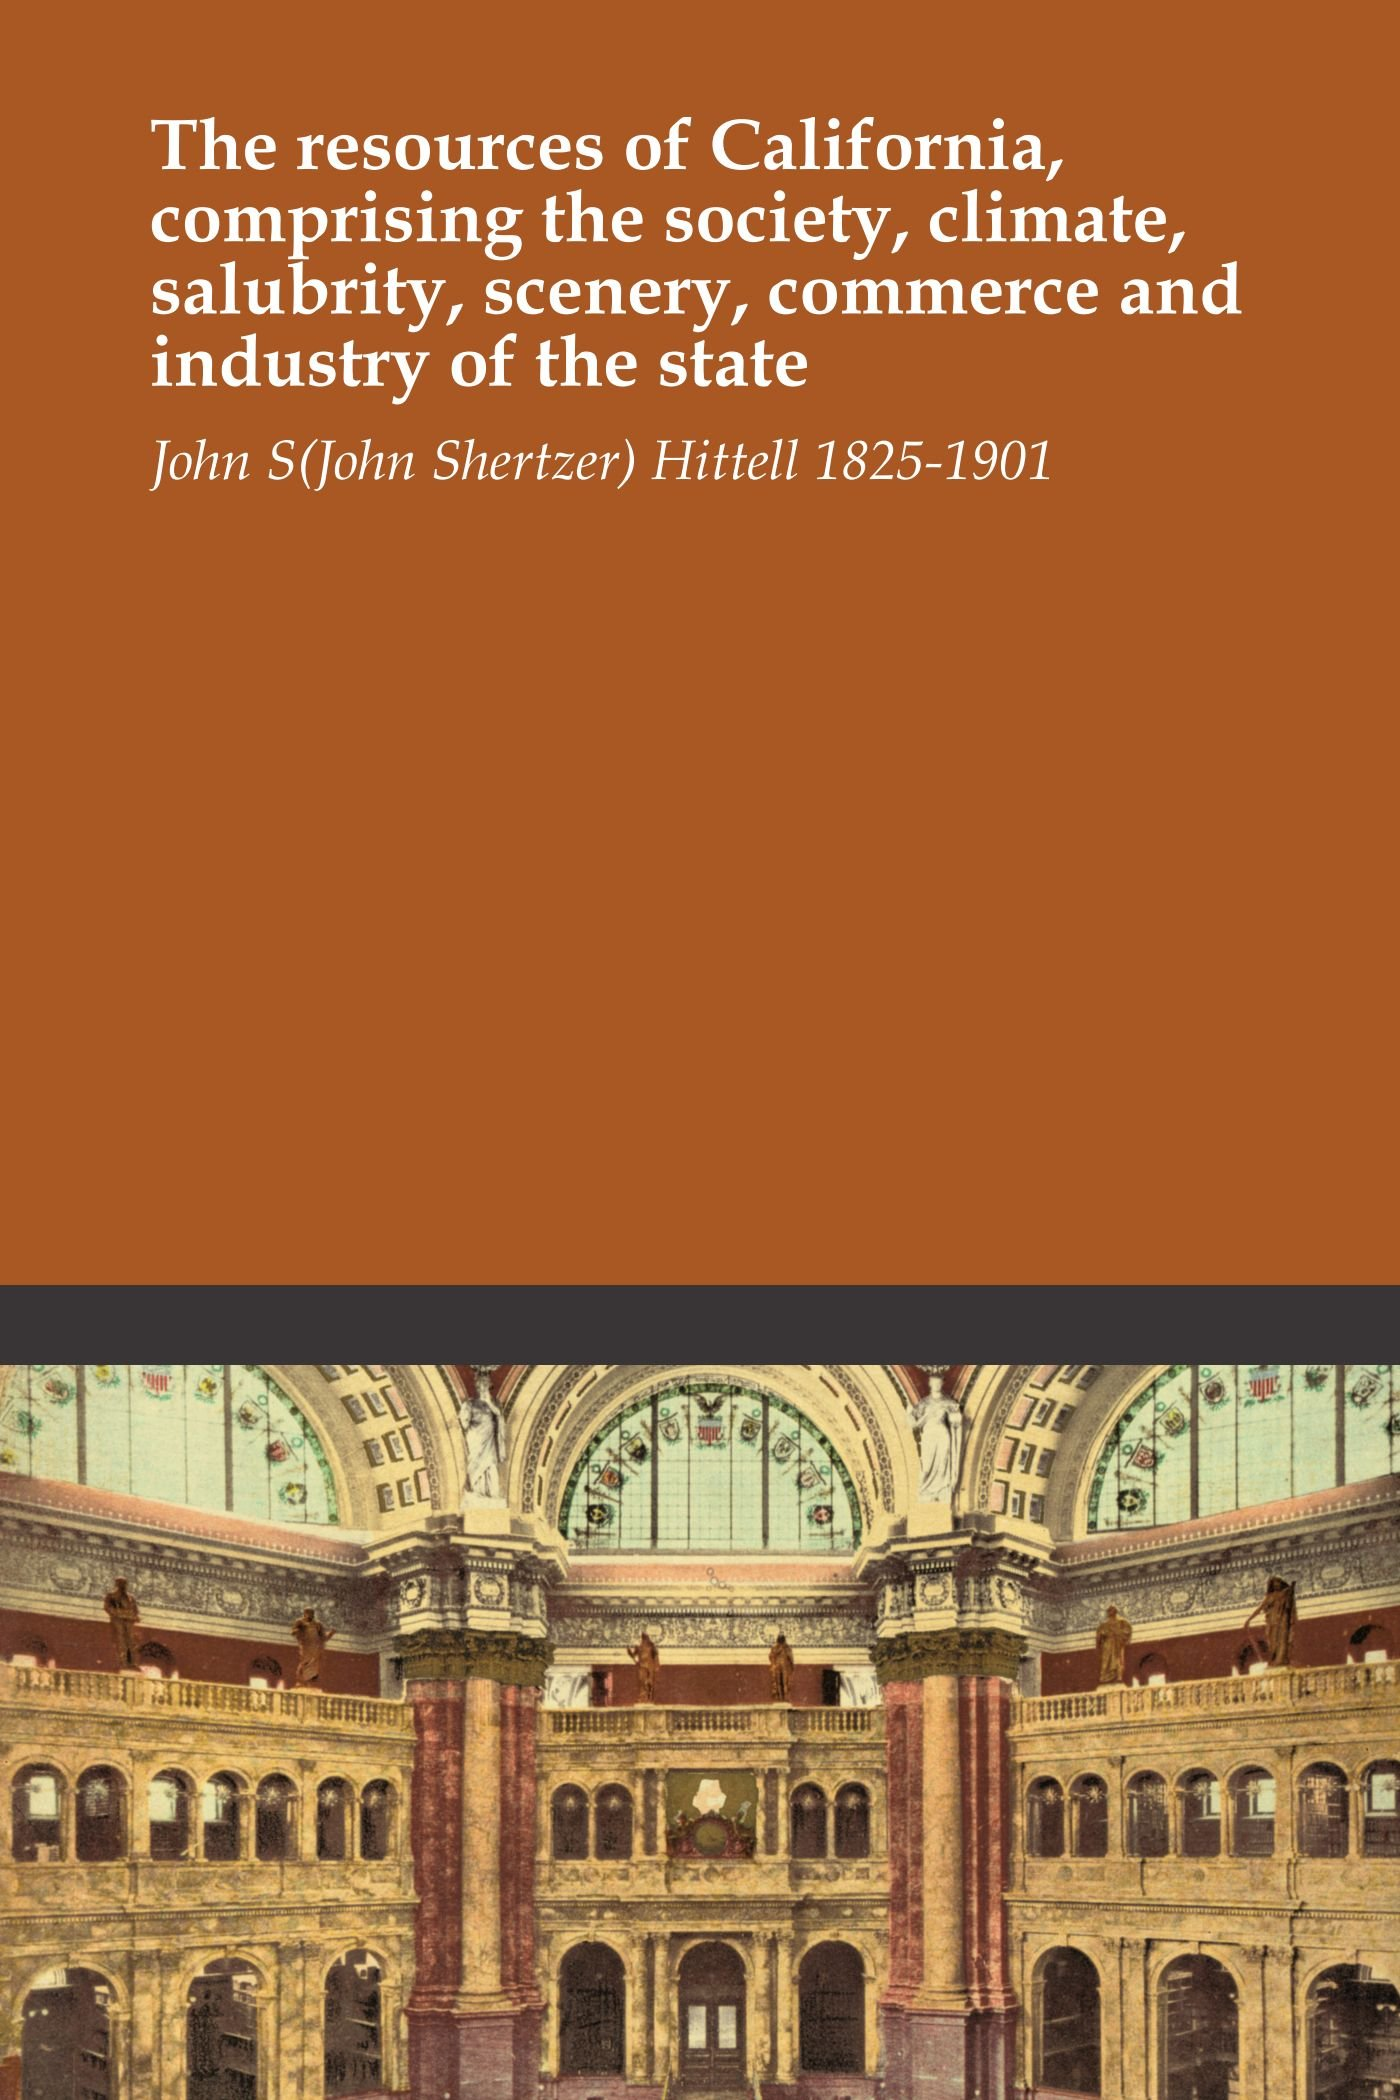 Download The resources of California, comprising the society, climate, salubrity, scenery, commerce and industry of the state pdf epub